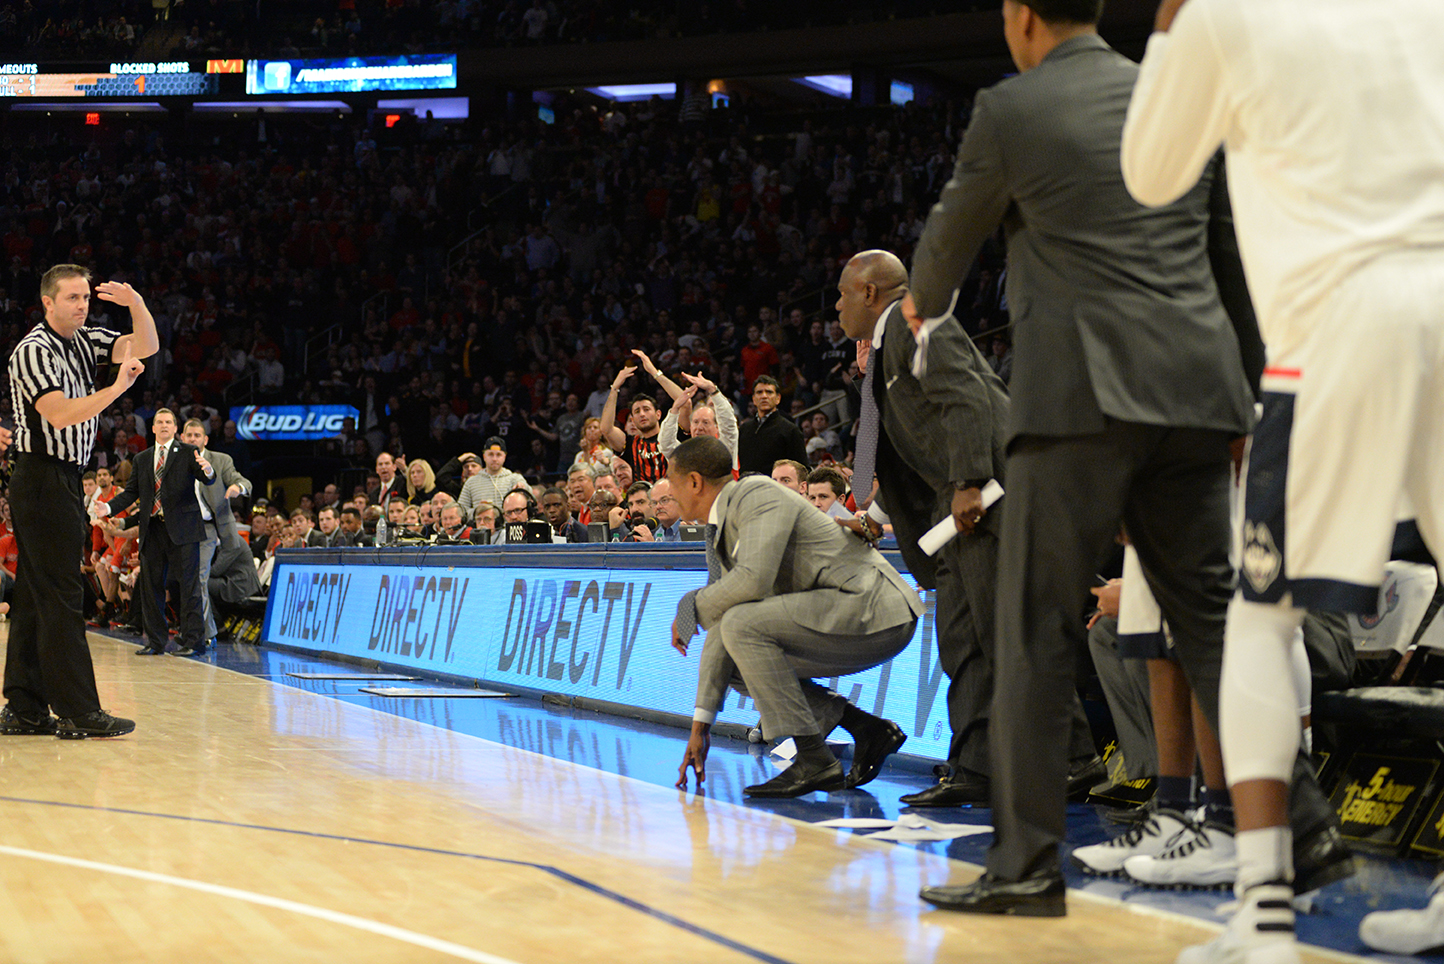 UConn head coach Kevin Ollie is seen receiving a technical foul during the Huskies' game against No. 6 Maryland on Tuesday, Dec. 8, 2015. (Ashley Maher/The Daily Campus)